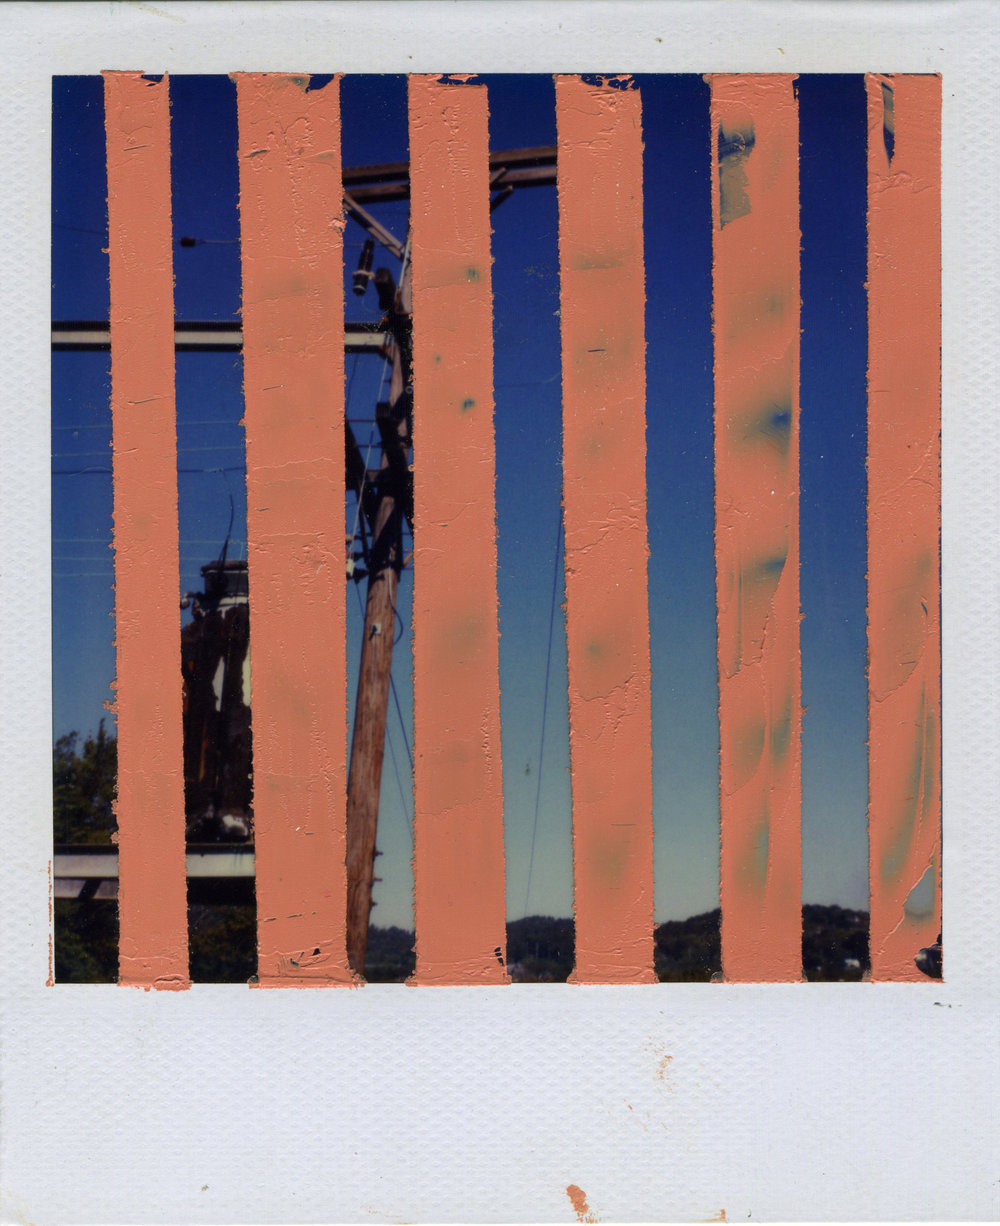 "INTERSECTION (VERTICAL HOLD)   oil on sx-70 Polaroid | 3.25"" x 4.25"" 